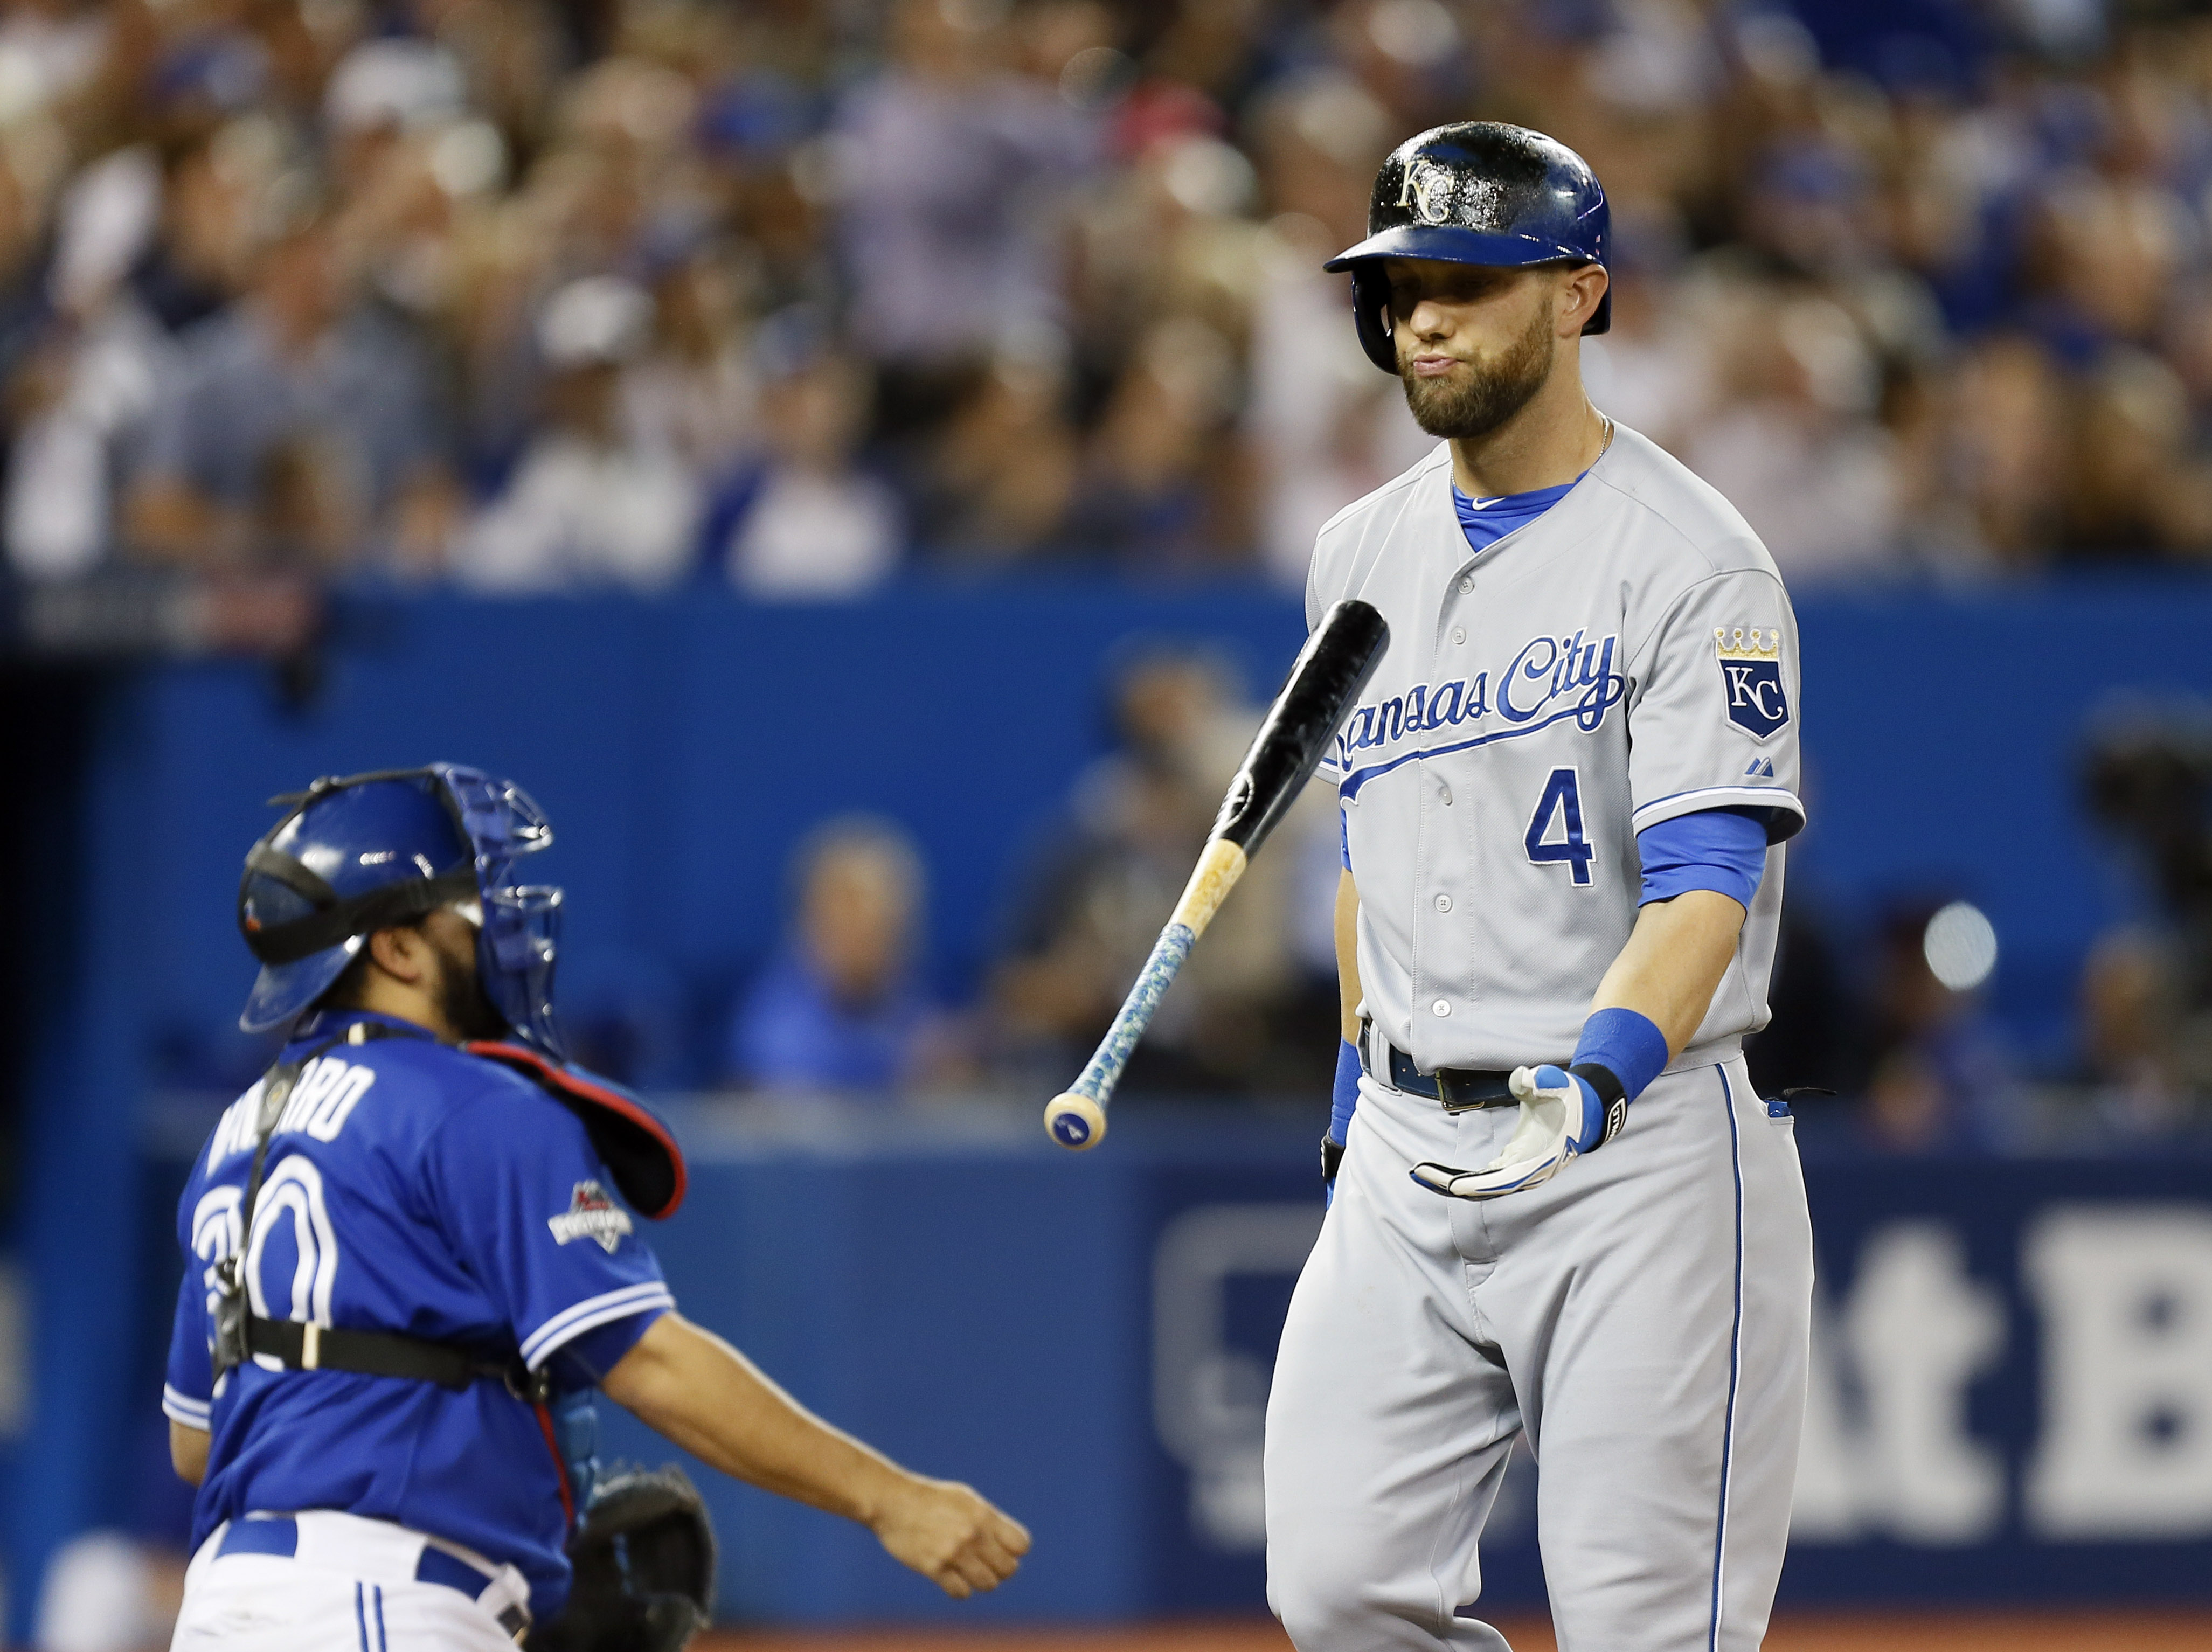 The Royals' Alex Gordon, above, reacts after striking out during the fourth inning against Marco Estrada of the Blue Jays during Game 5 of the ALCS. (John E. Sokolowski-USA TODAY Sports)